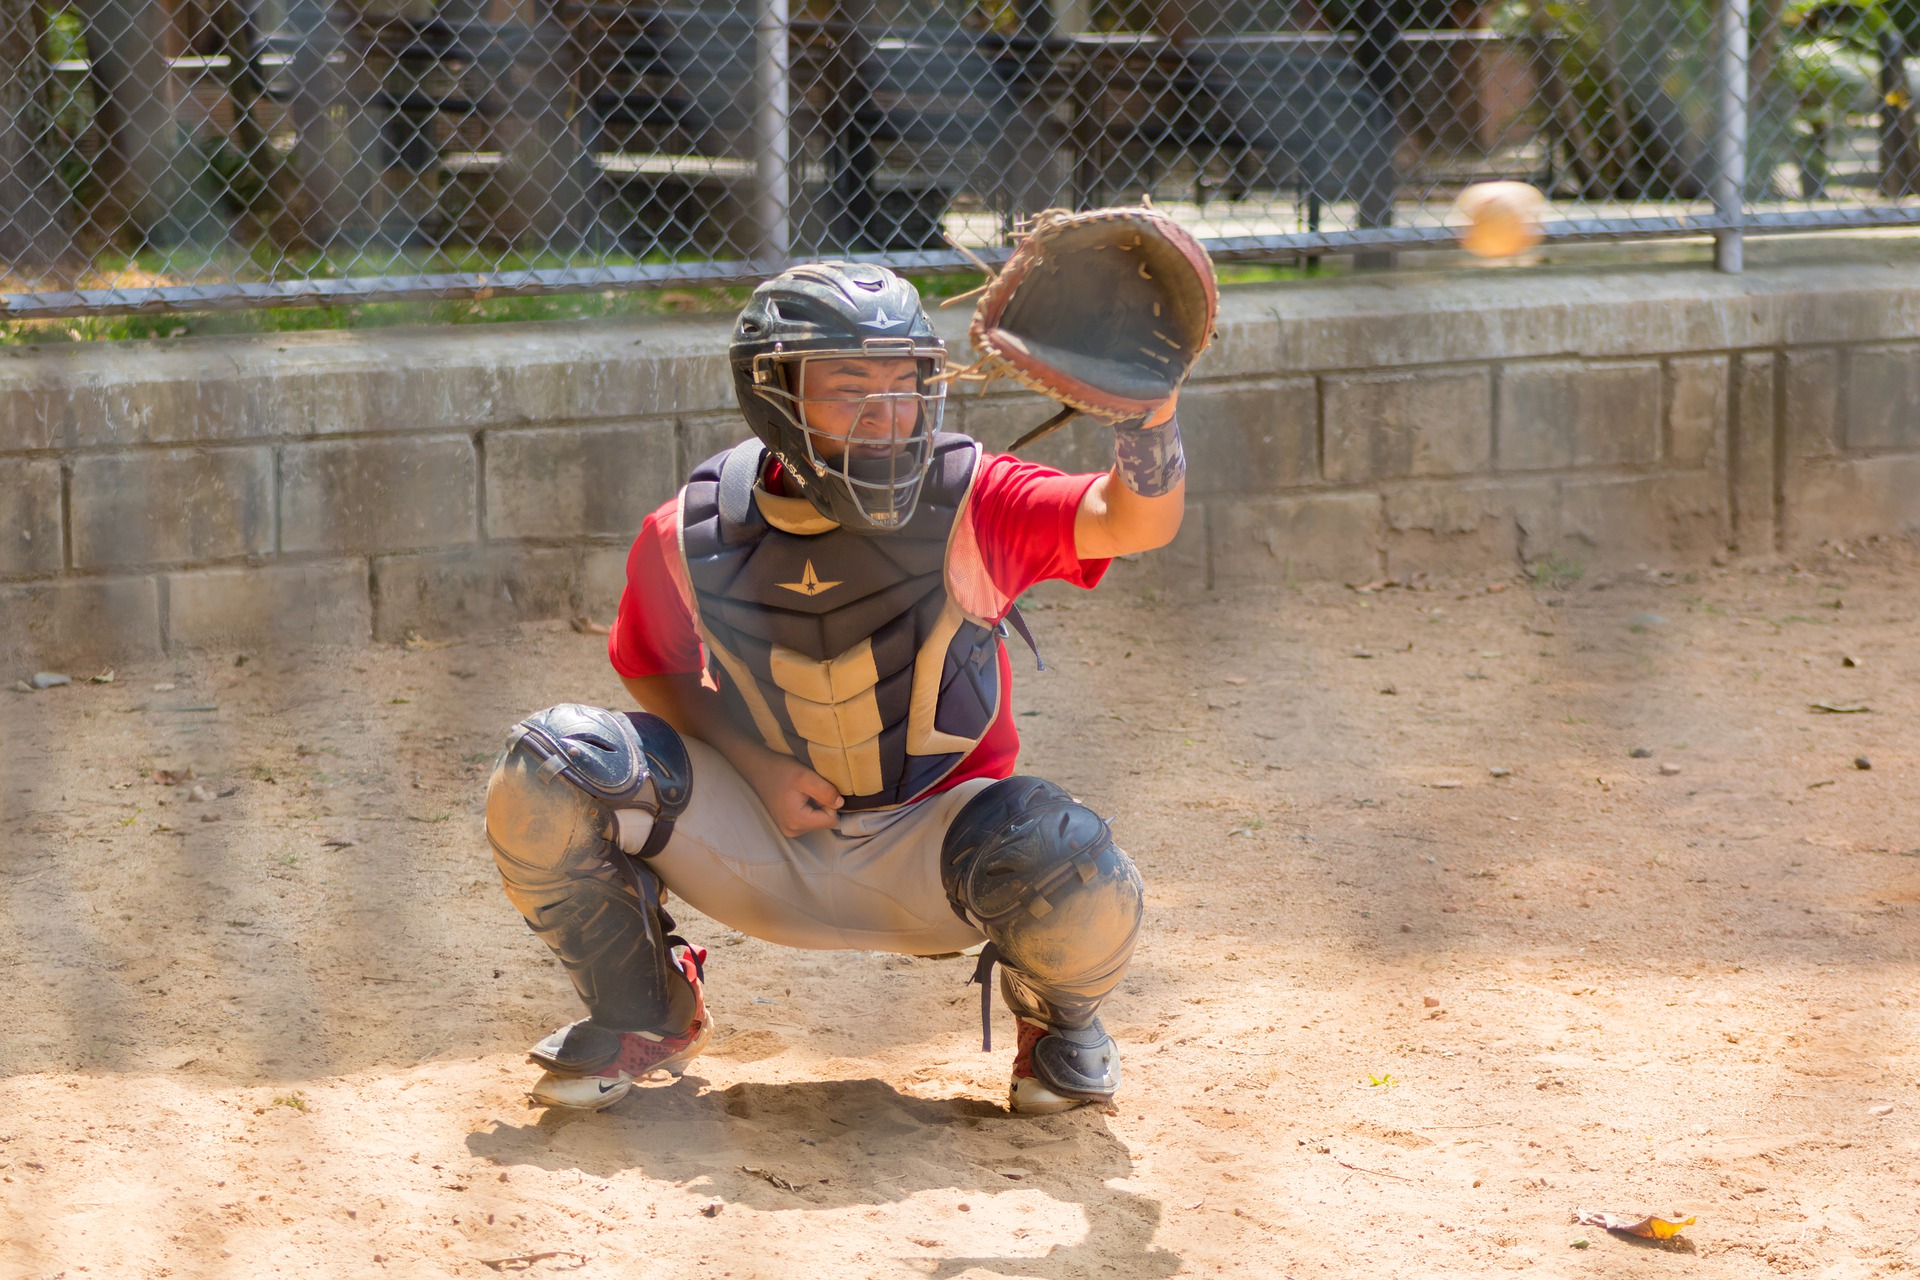 A catcher hunched down in a game of baseball with their left arm outstretched ready to catch the ball: Types of Baseball Gloves [MindfuseBaseball.com]